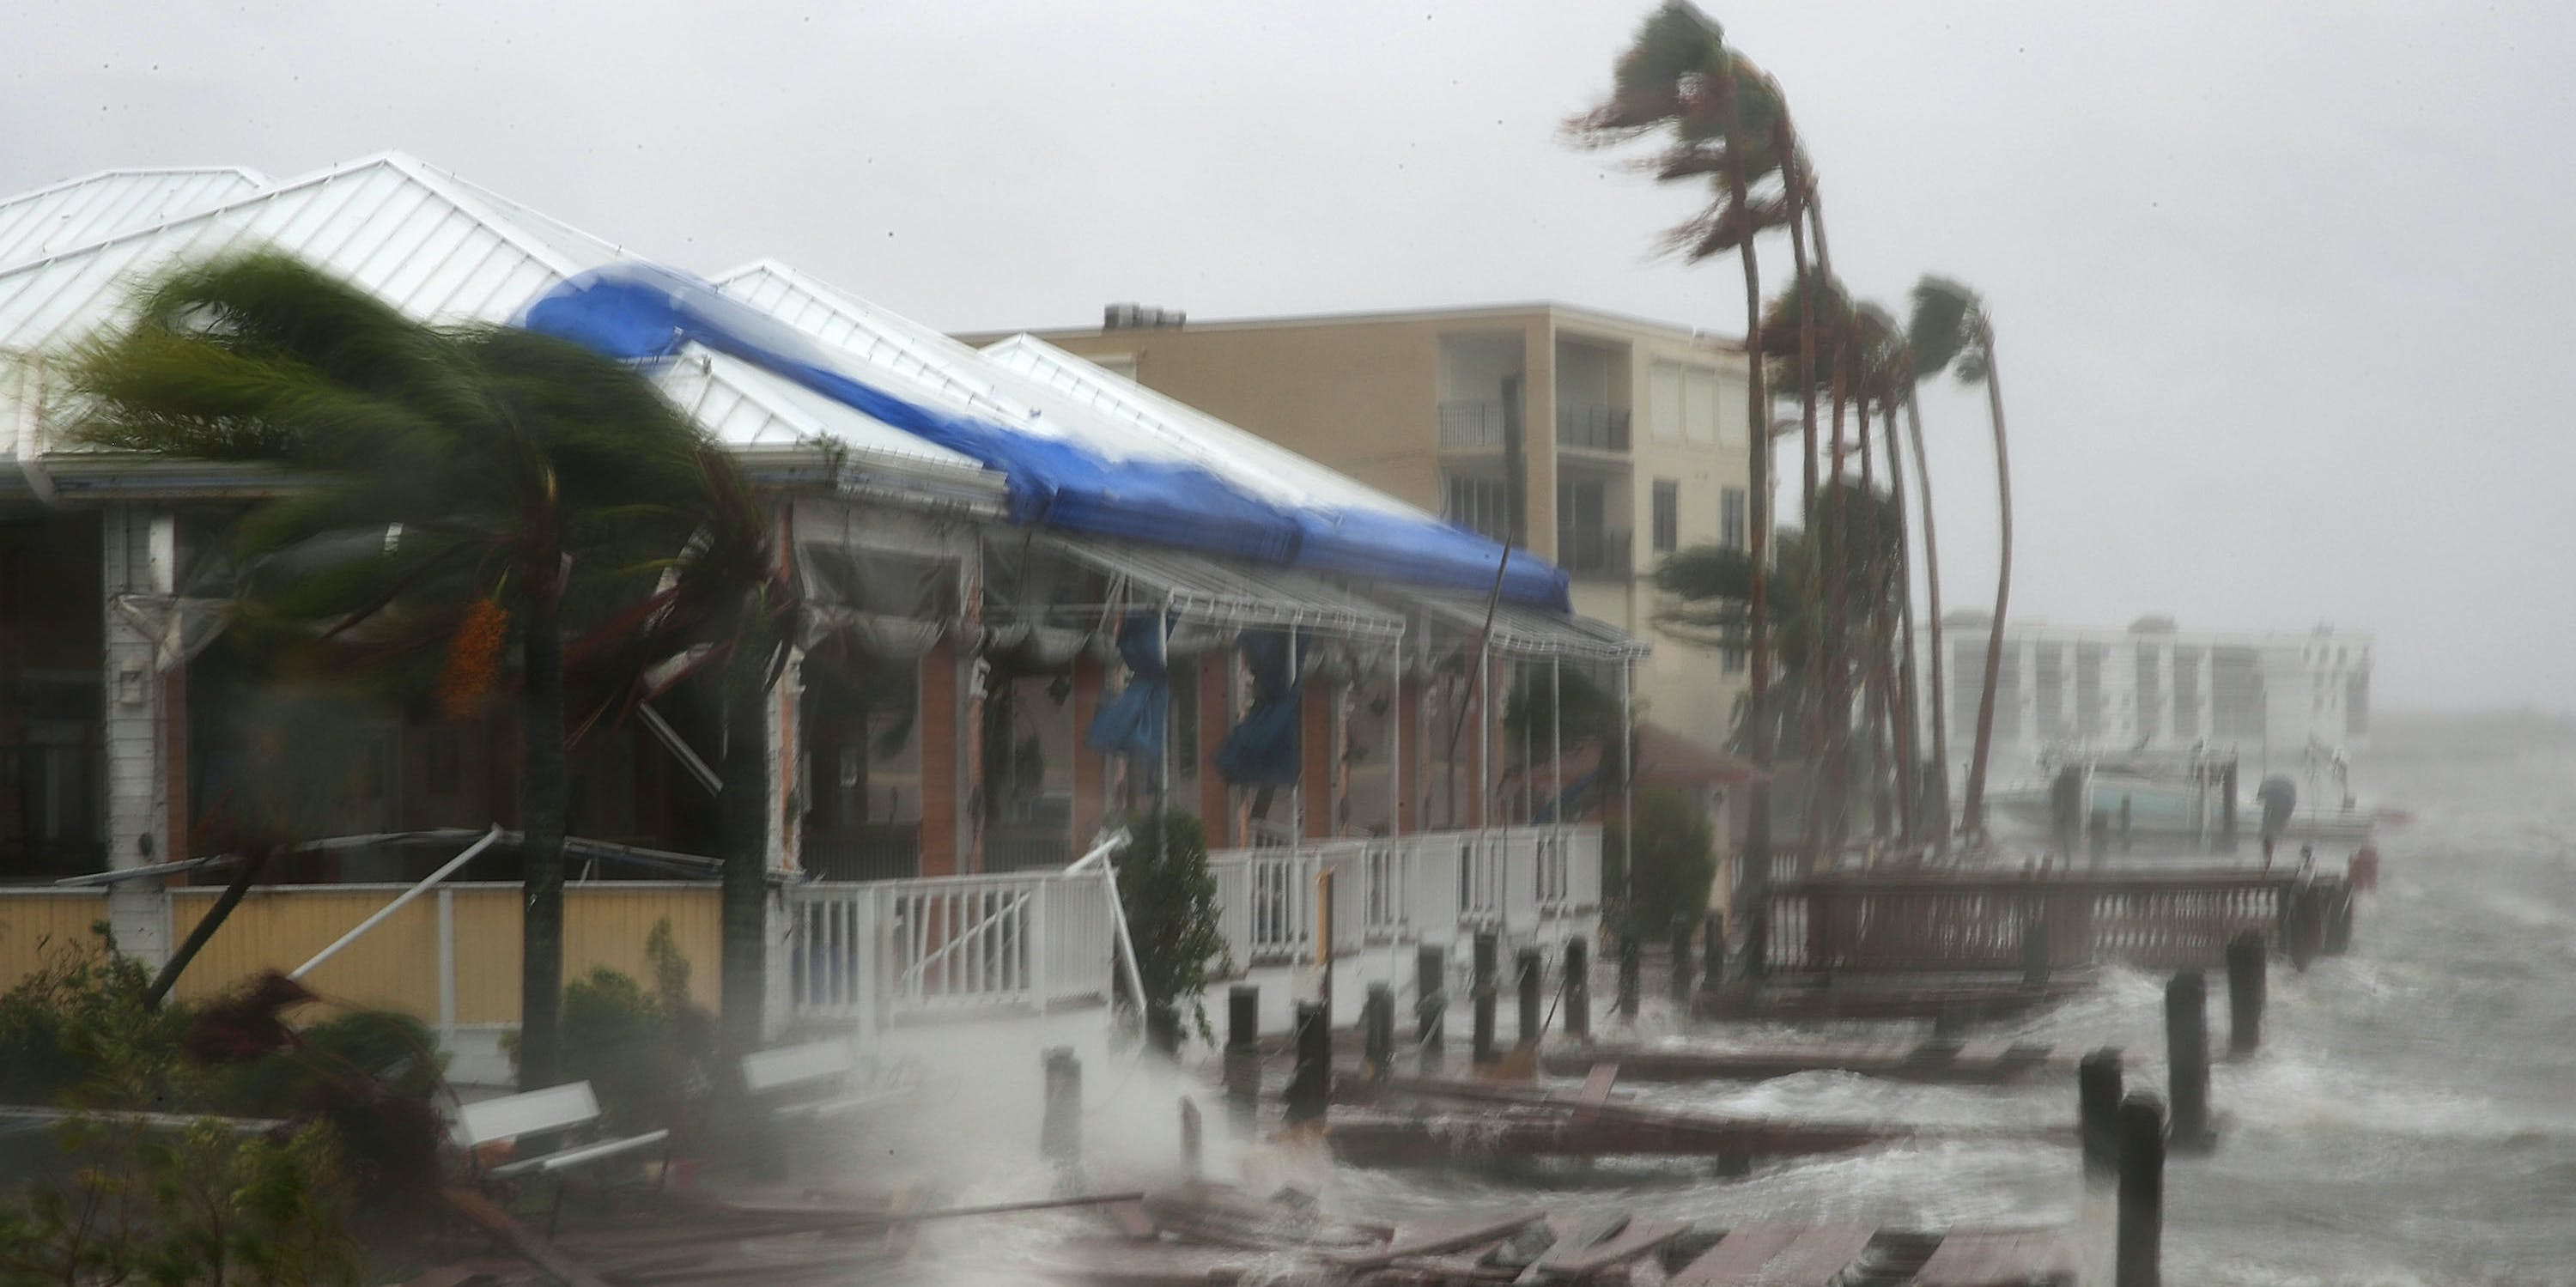 Heavy waves caused by Hurricane Matthew pound the boat docks at the Sunset Bar and Grill, October 7, 2016 on Cocoa Beach, Florida.